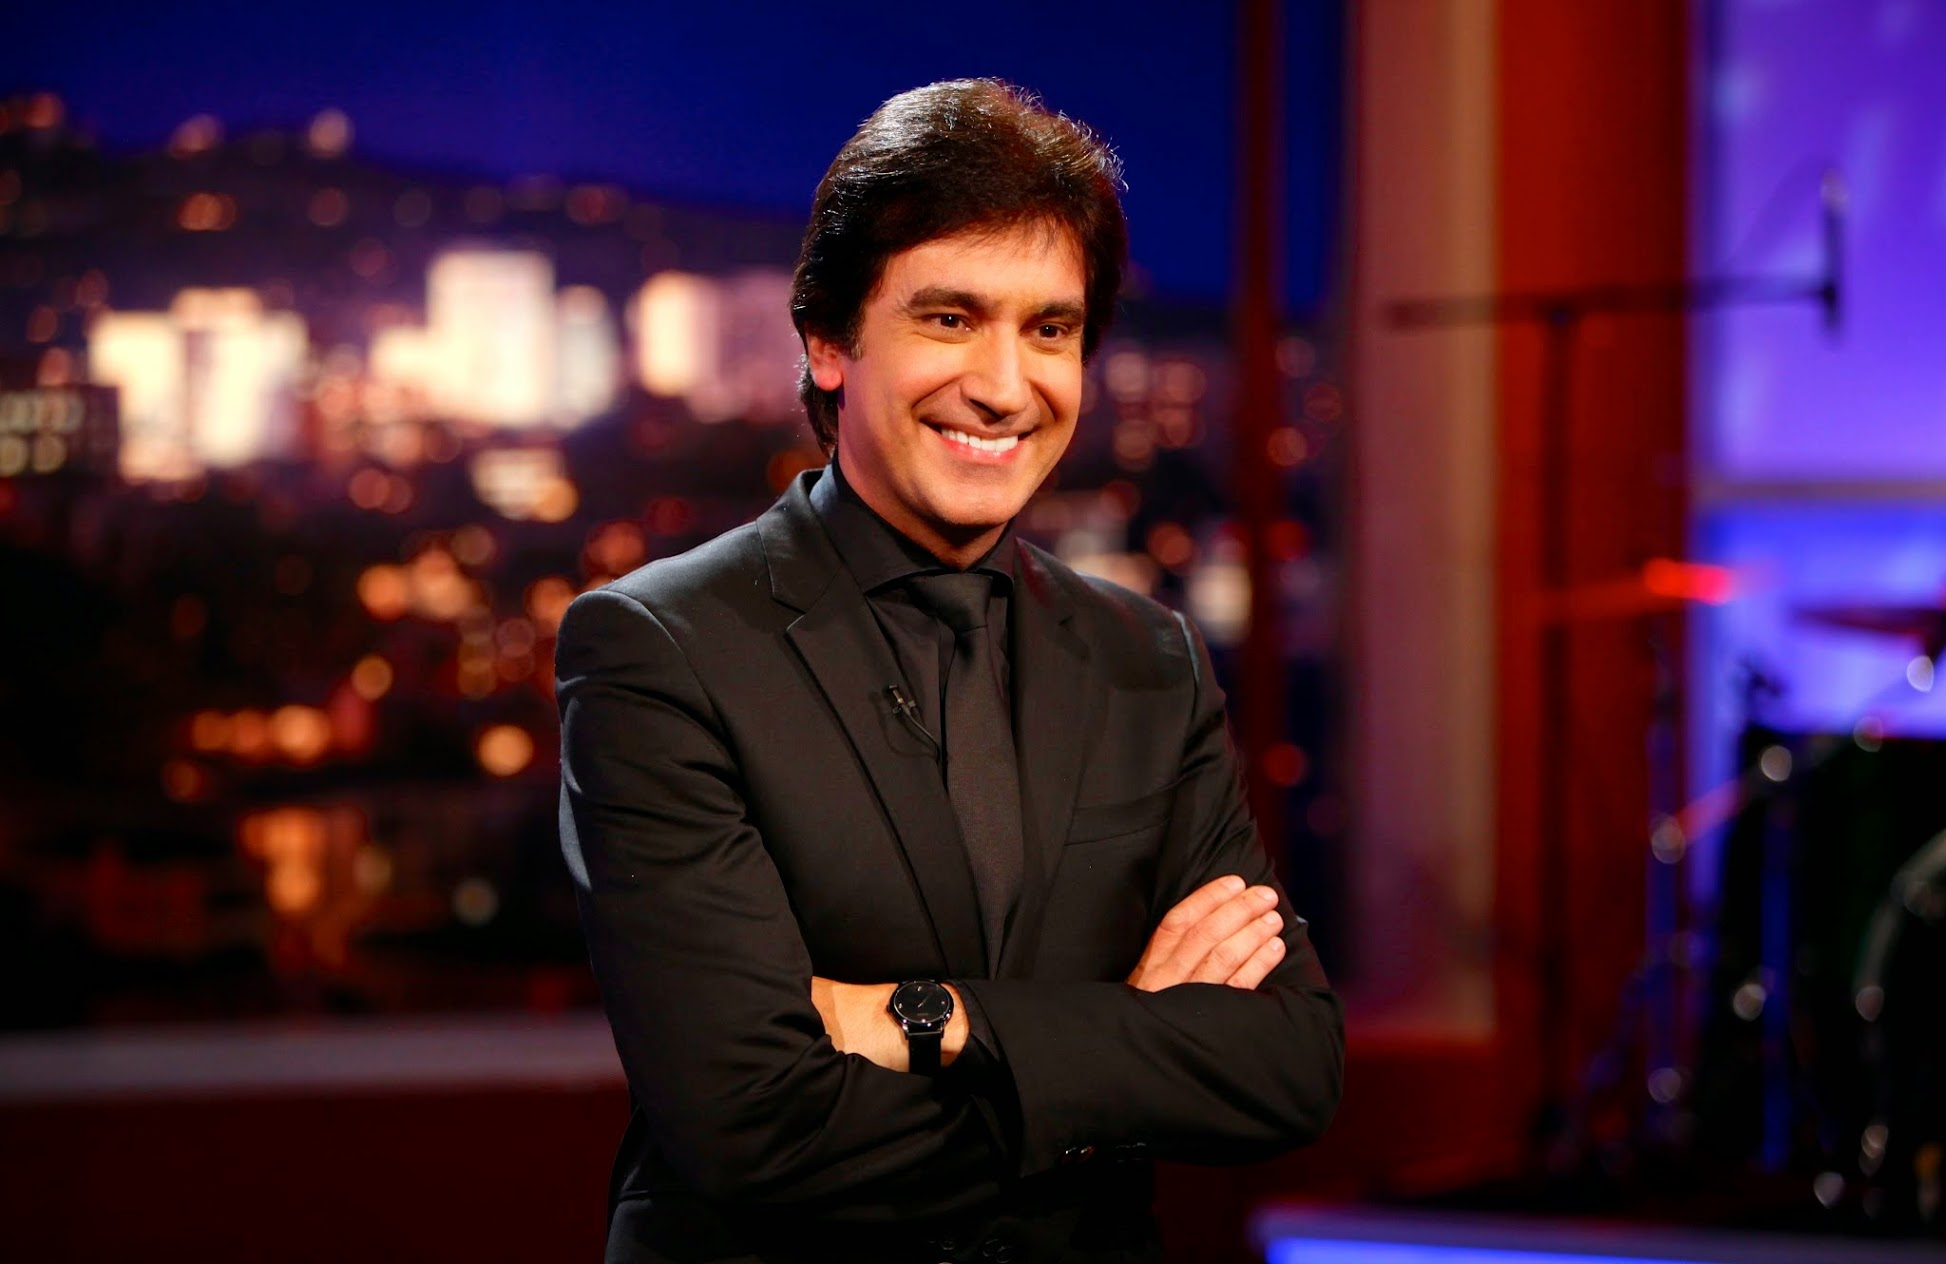 """Dante Night Show"" comes to AmericaTeVe in late night, family-friendly format"